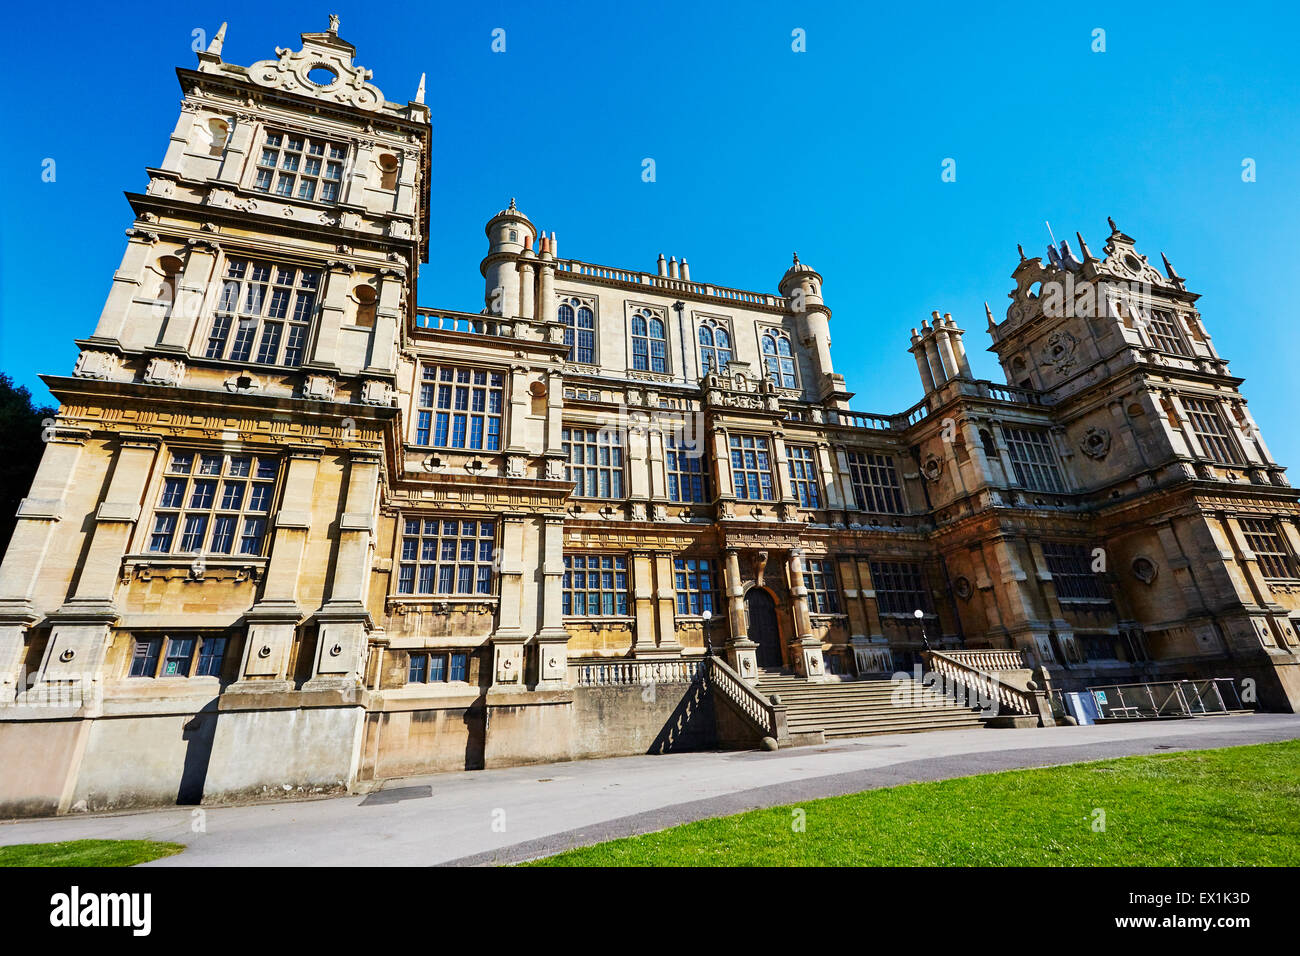 View of Wollaton Hall, Nottingham, England, UK. - Stock Image